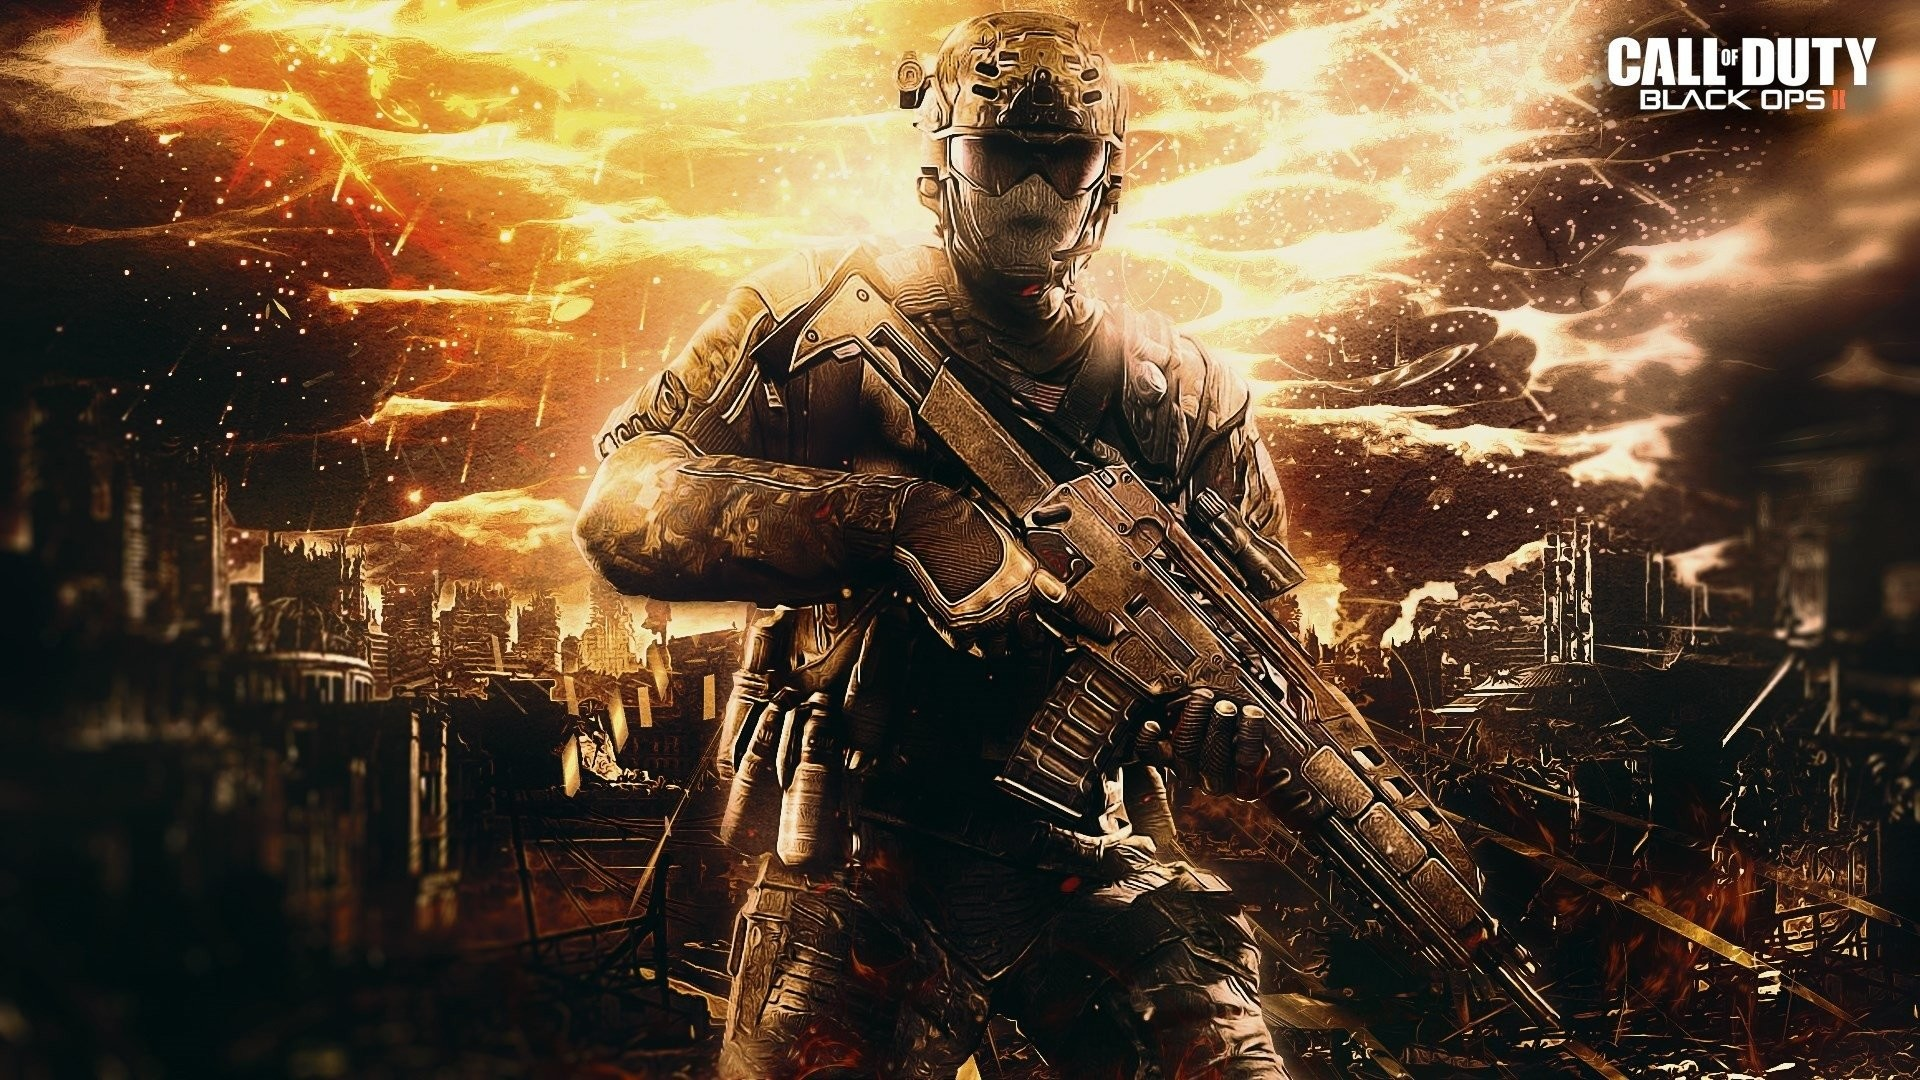 1920x1080 Call Of Duty Wallpapers Black Ops 2 HD